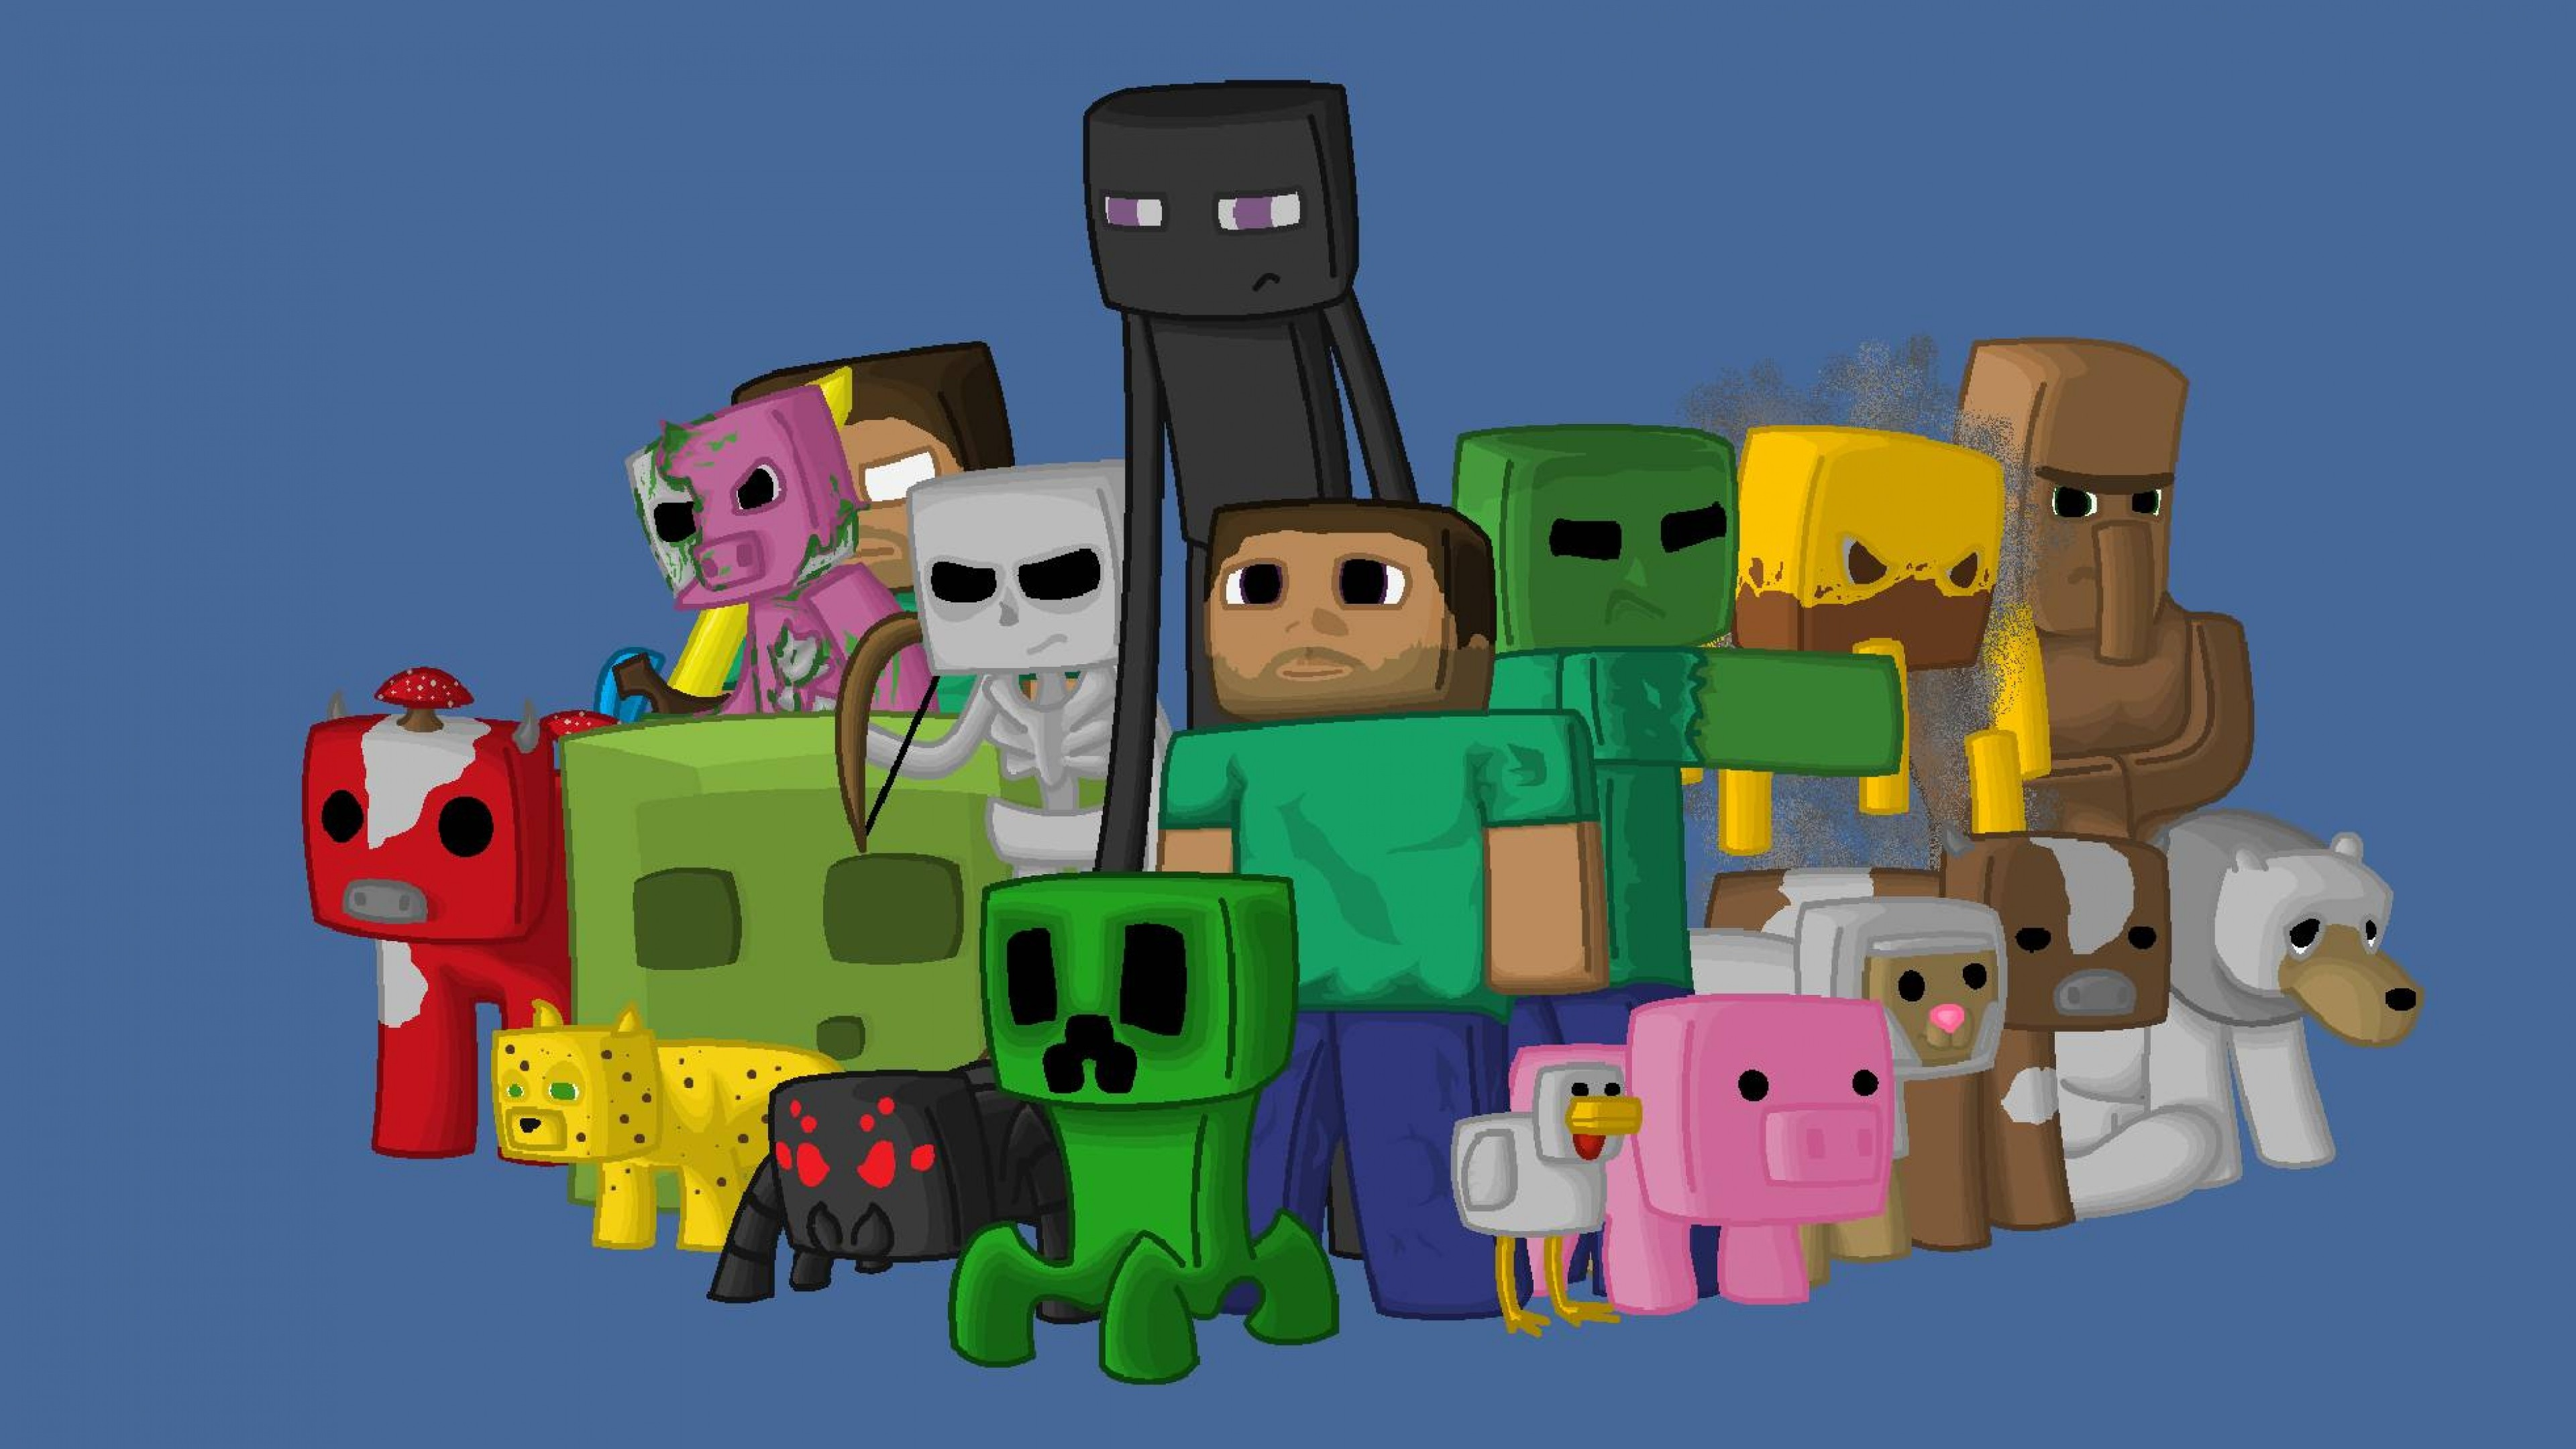 1920x1080 Wallpaper Generator With Skins Other Fan Art Show Minecraft Wallpapers Creator